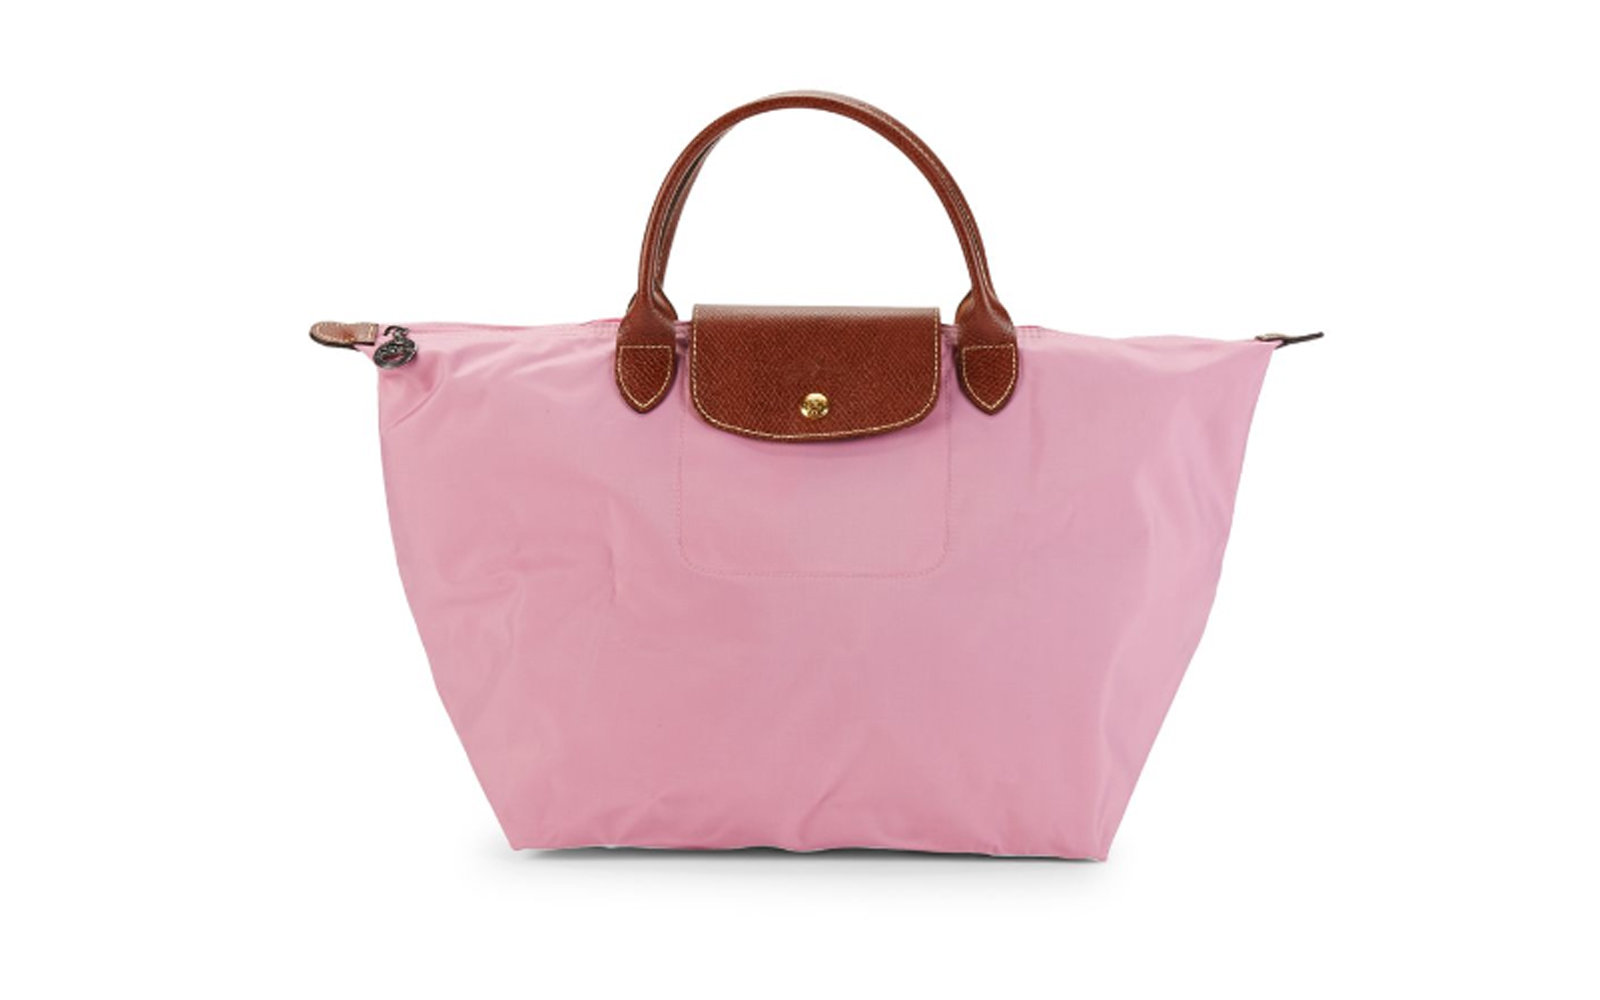 Longchamp Le Pliage Tote Bag in Pink